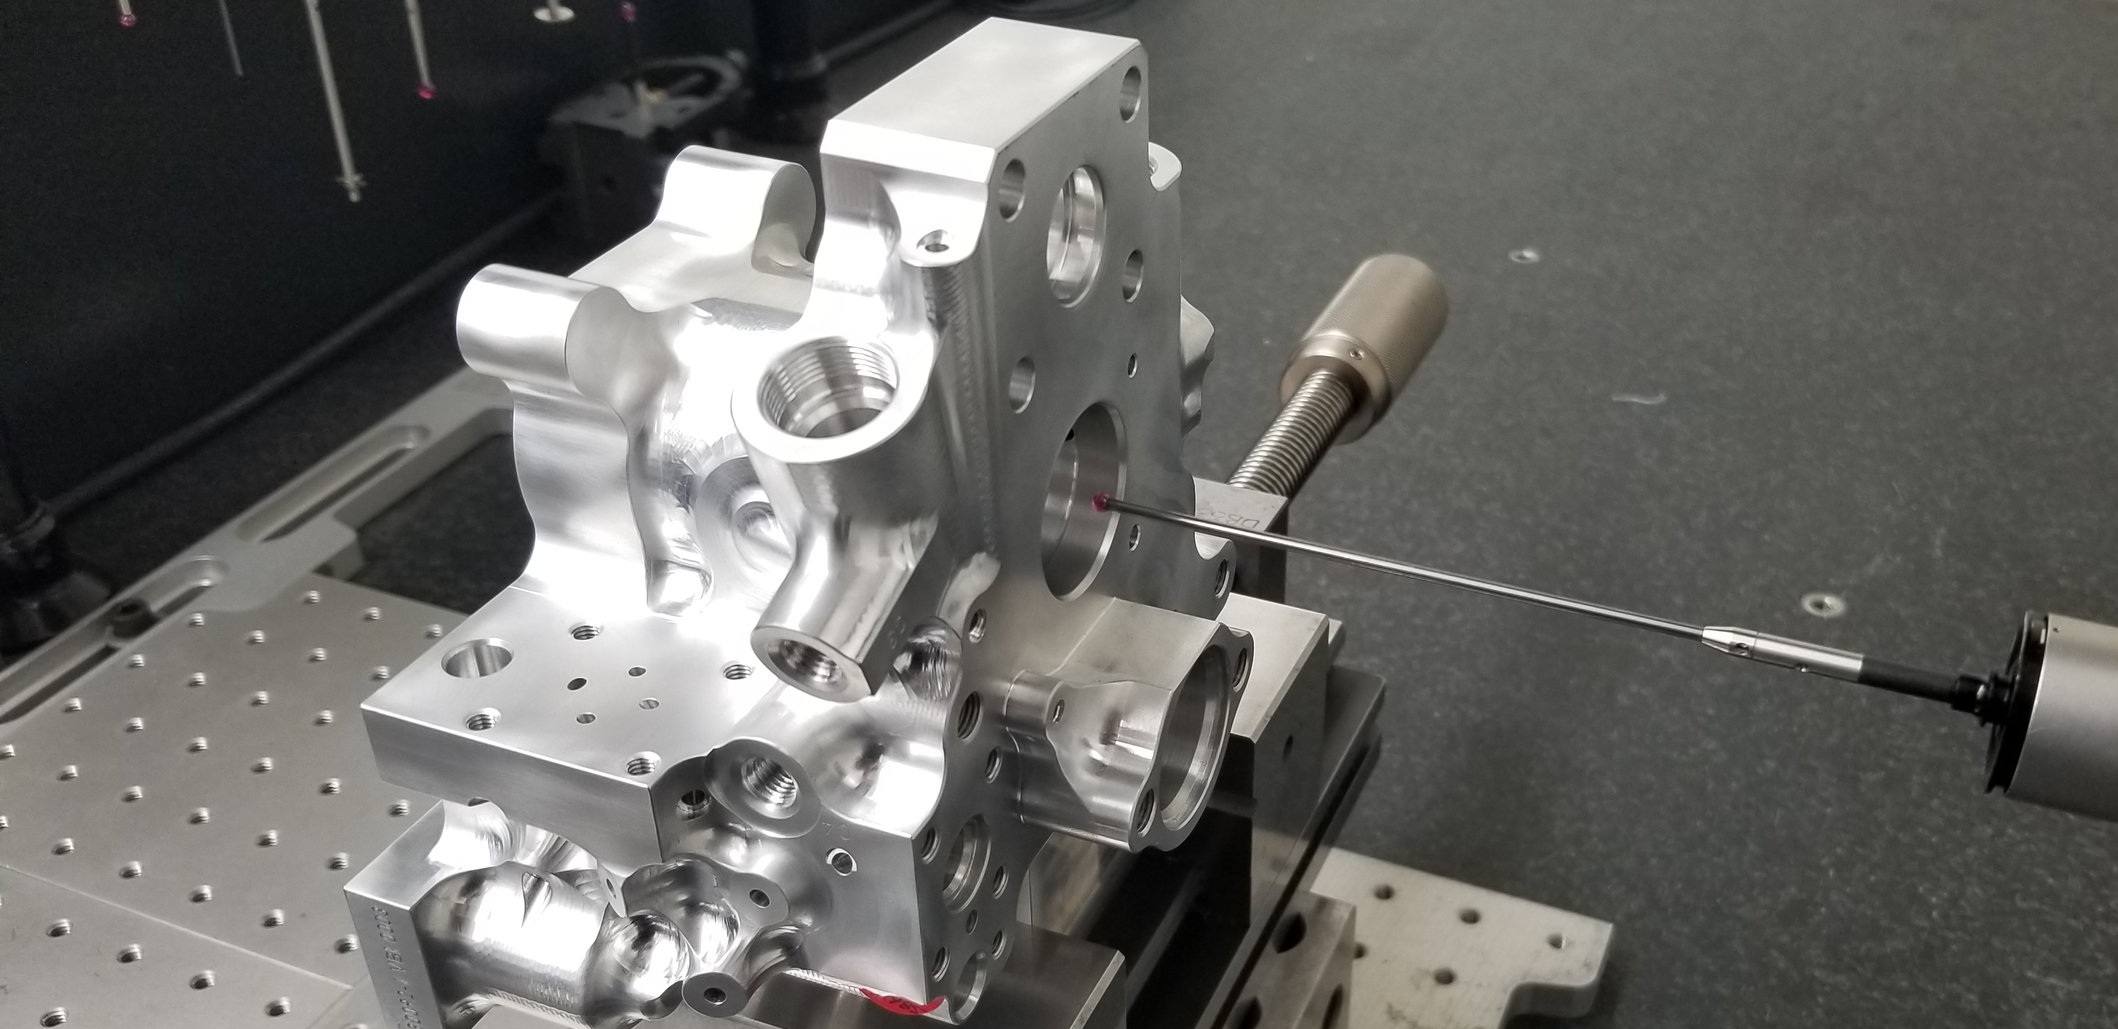 Two of our CMM's have an articulating head and can move in 7.5° increments. This allows us to check at least 5 different sides of a part during one program.